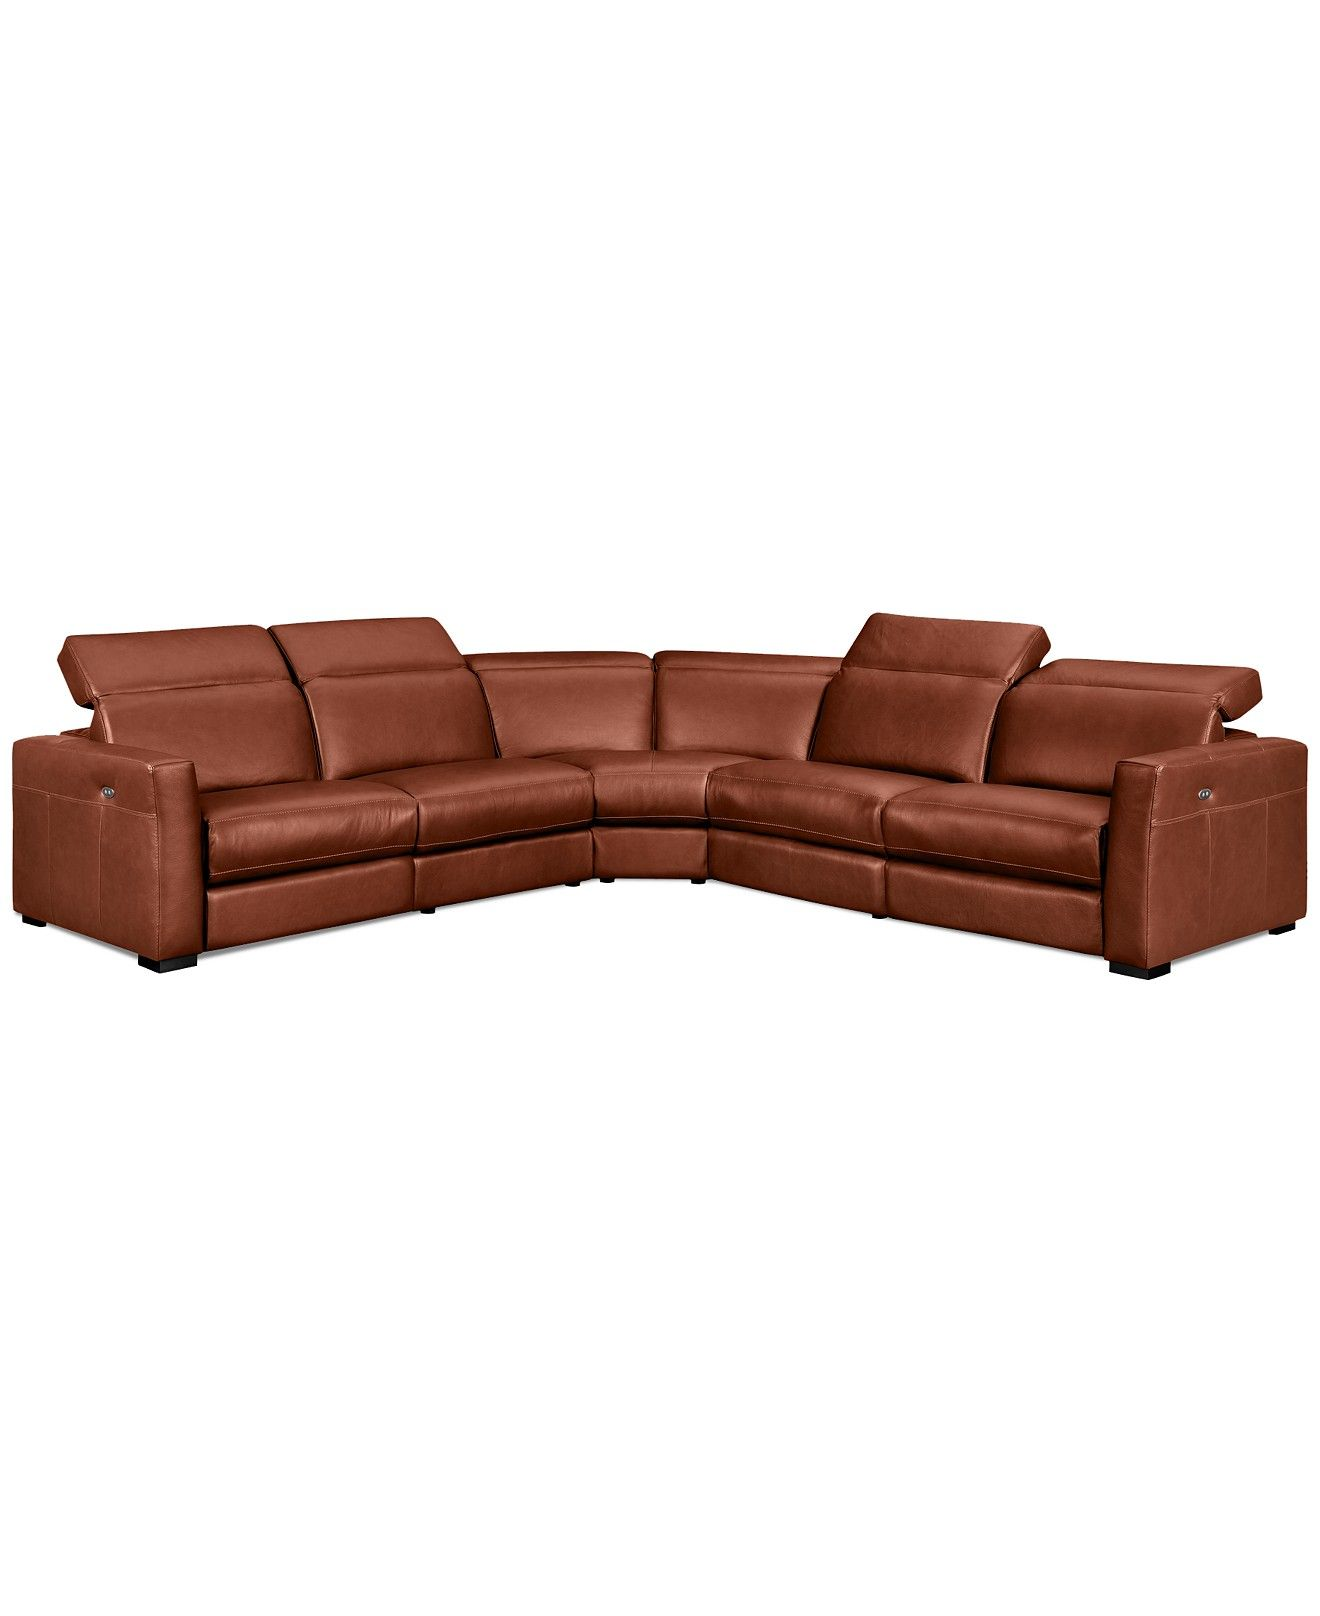 Nicolo 5-Piece Leather Reclining Sectional Sofa with 3 Powered ...